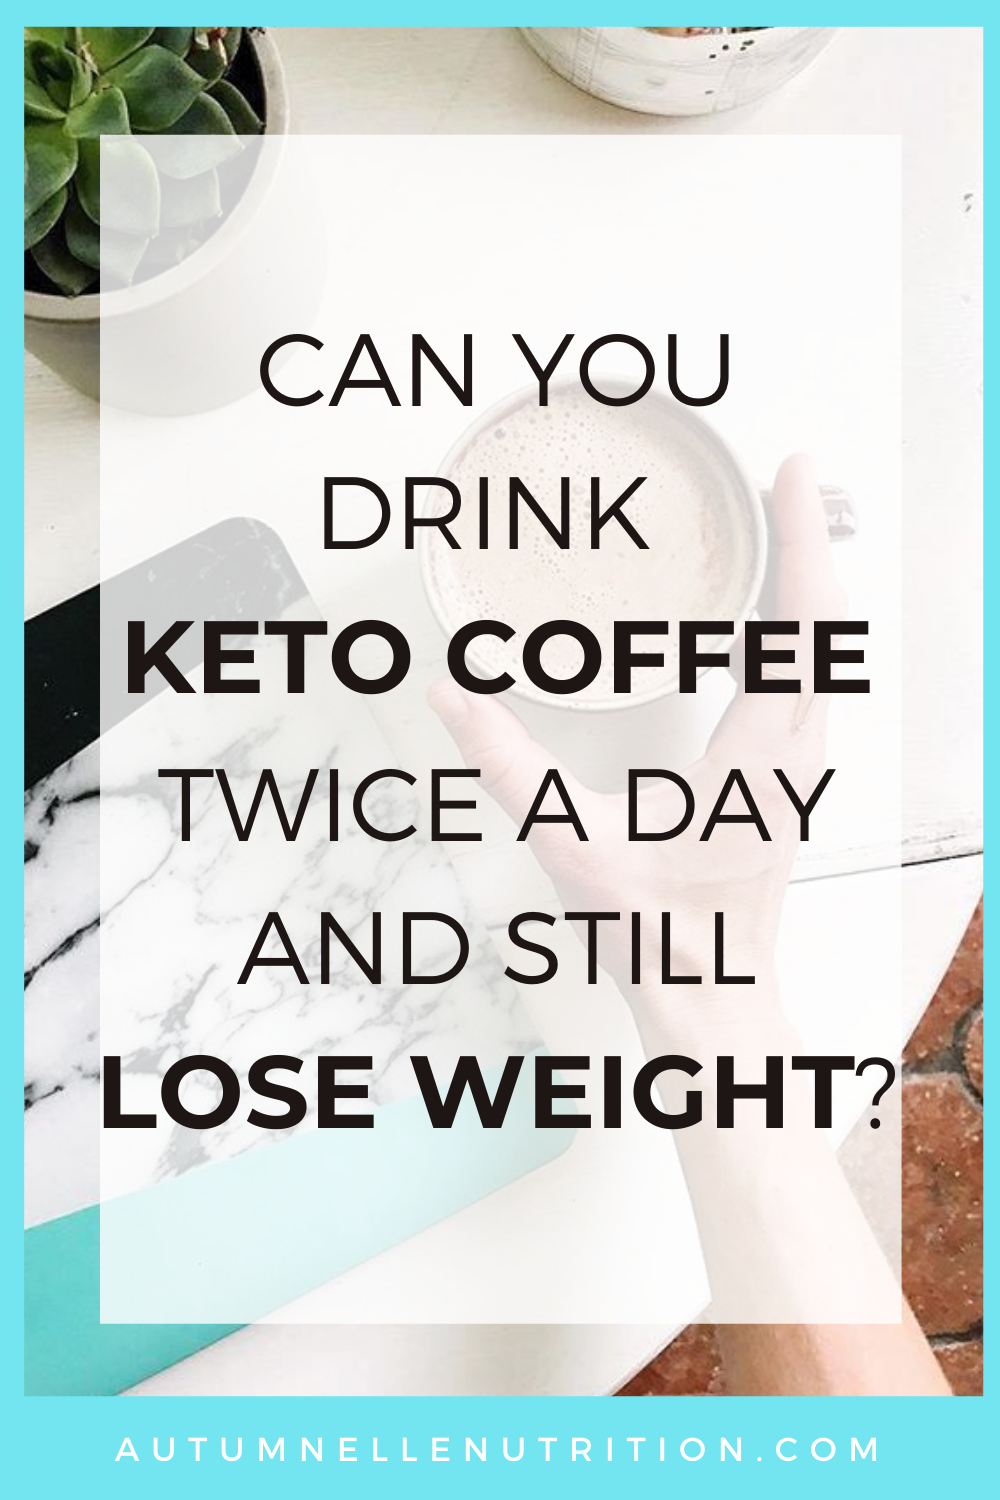 How Many Times A Day Can I Drink Keto Coffee